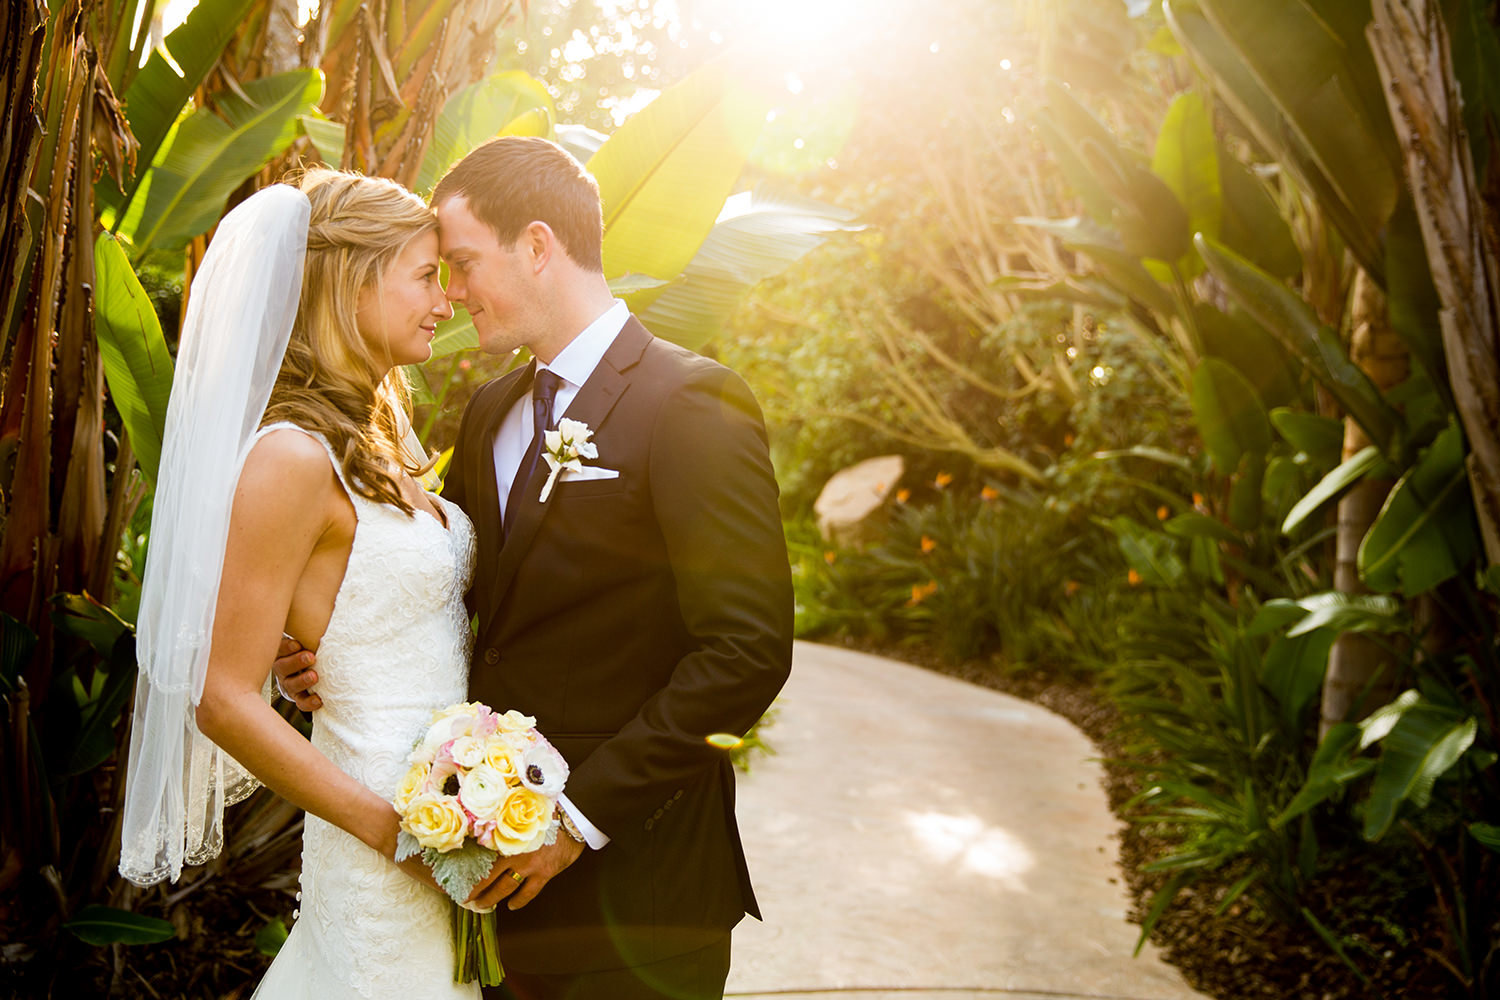 Beautiful wedding portrait with lens flare